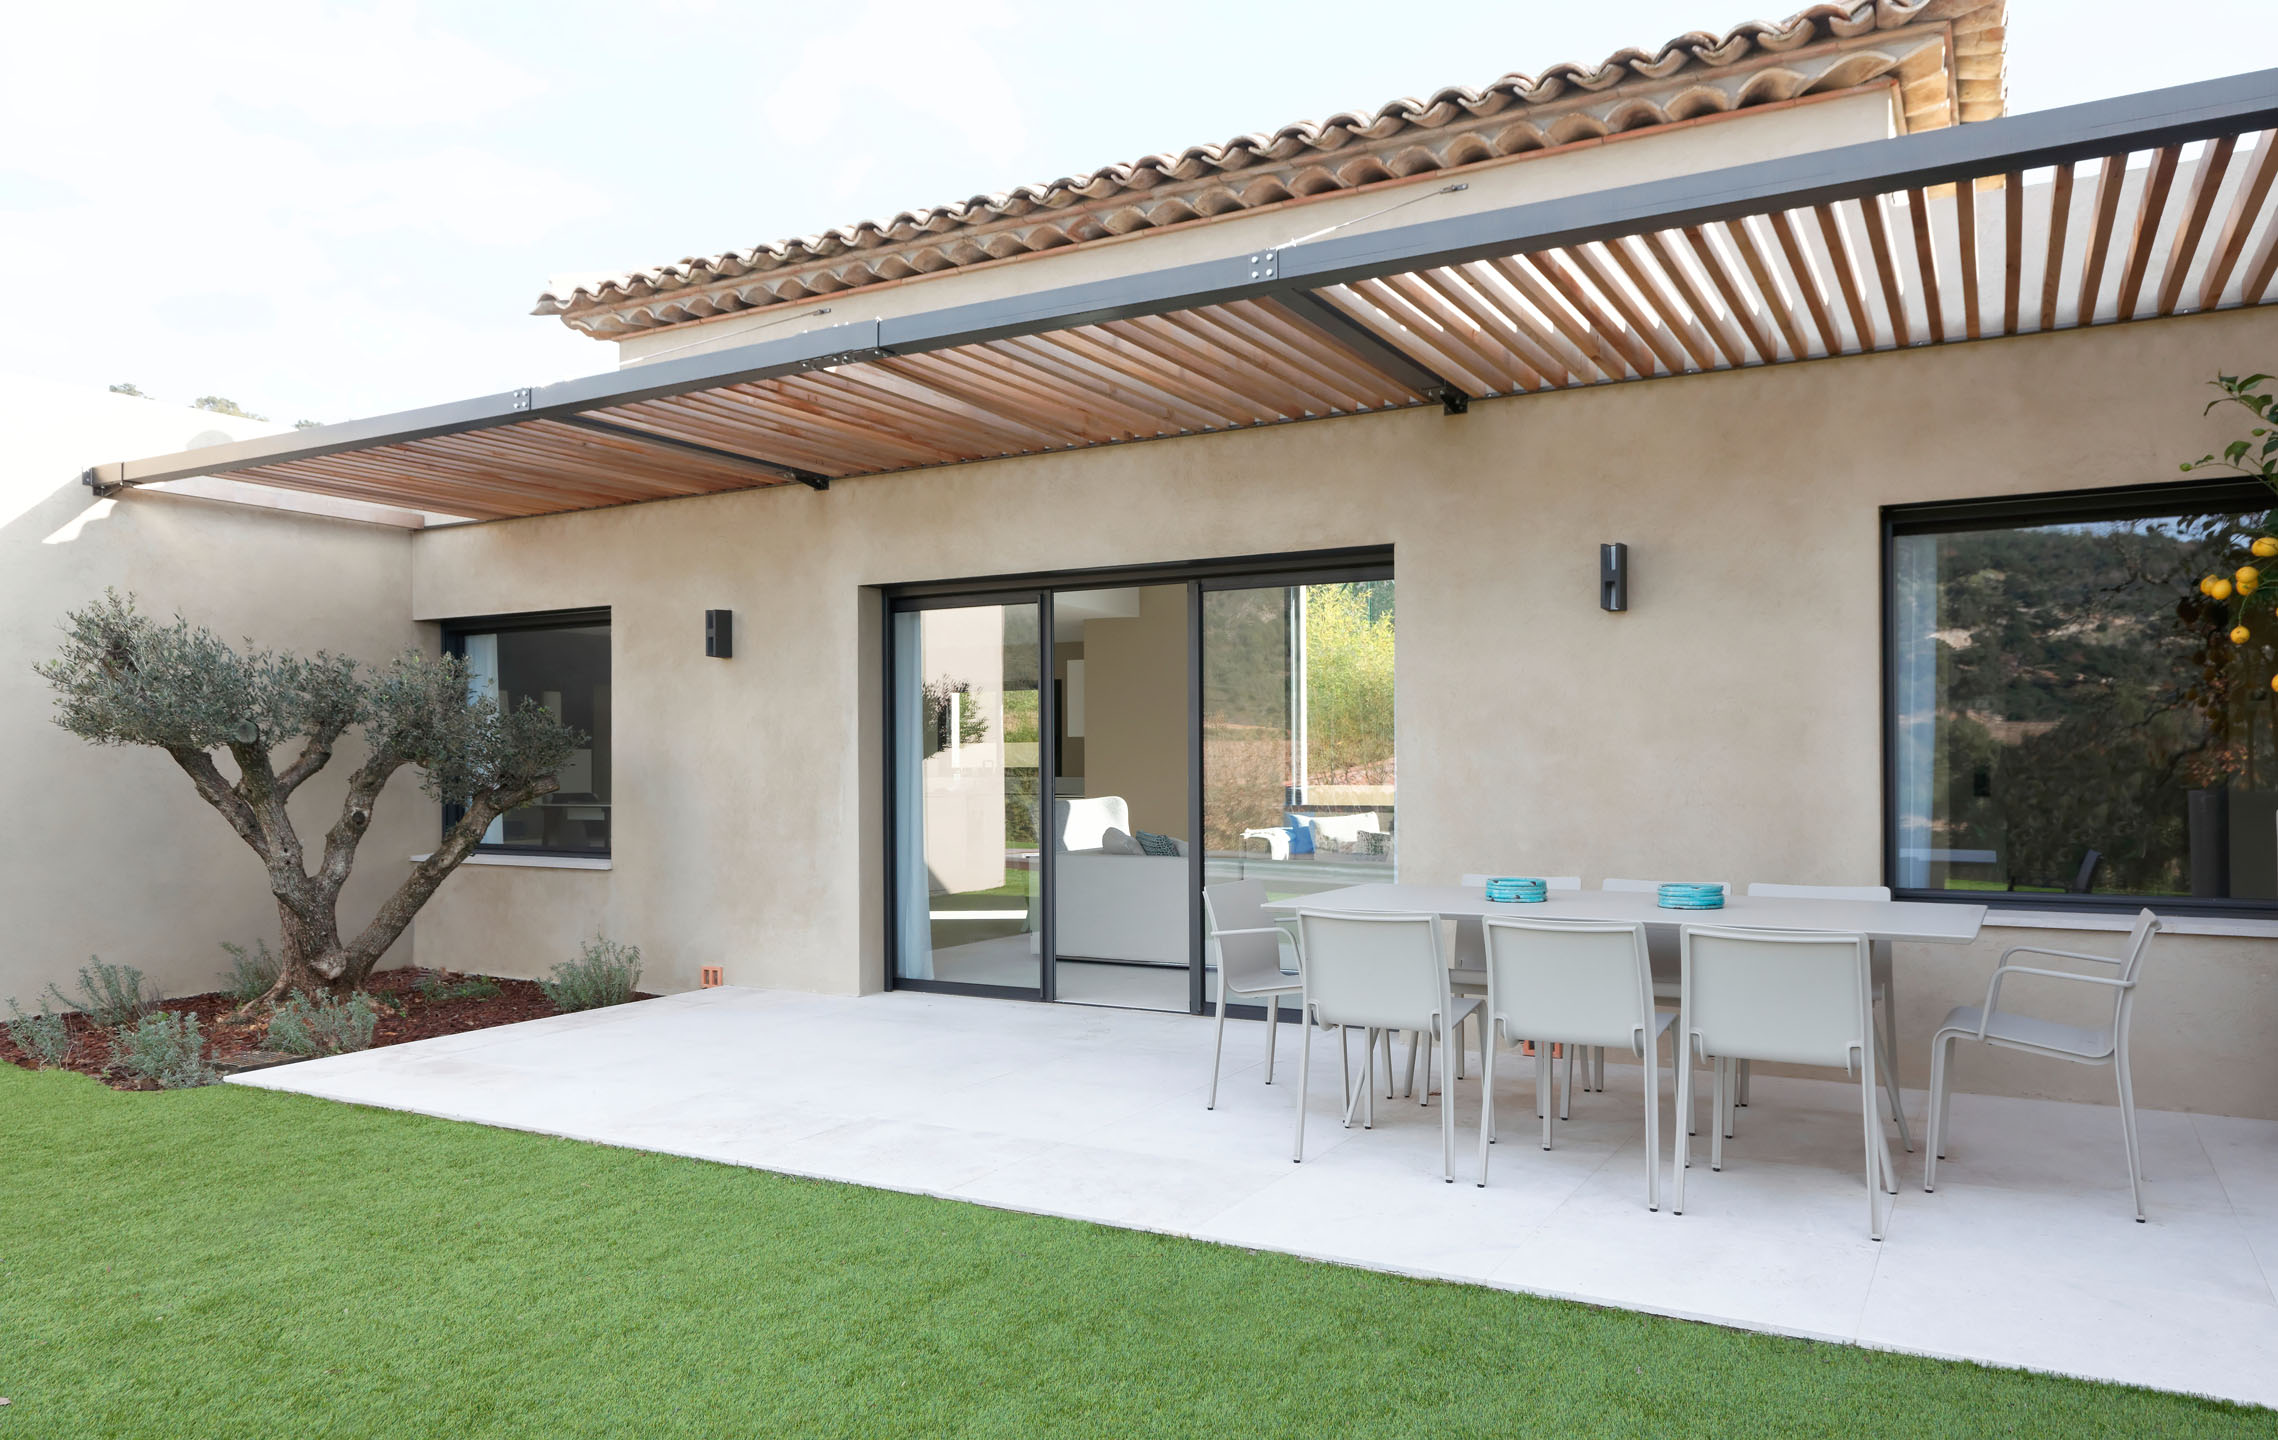 Rafflin alu pvc construction neuve maison contemporaine rafflin alu pvc for Construction neuve